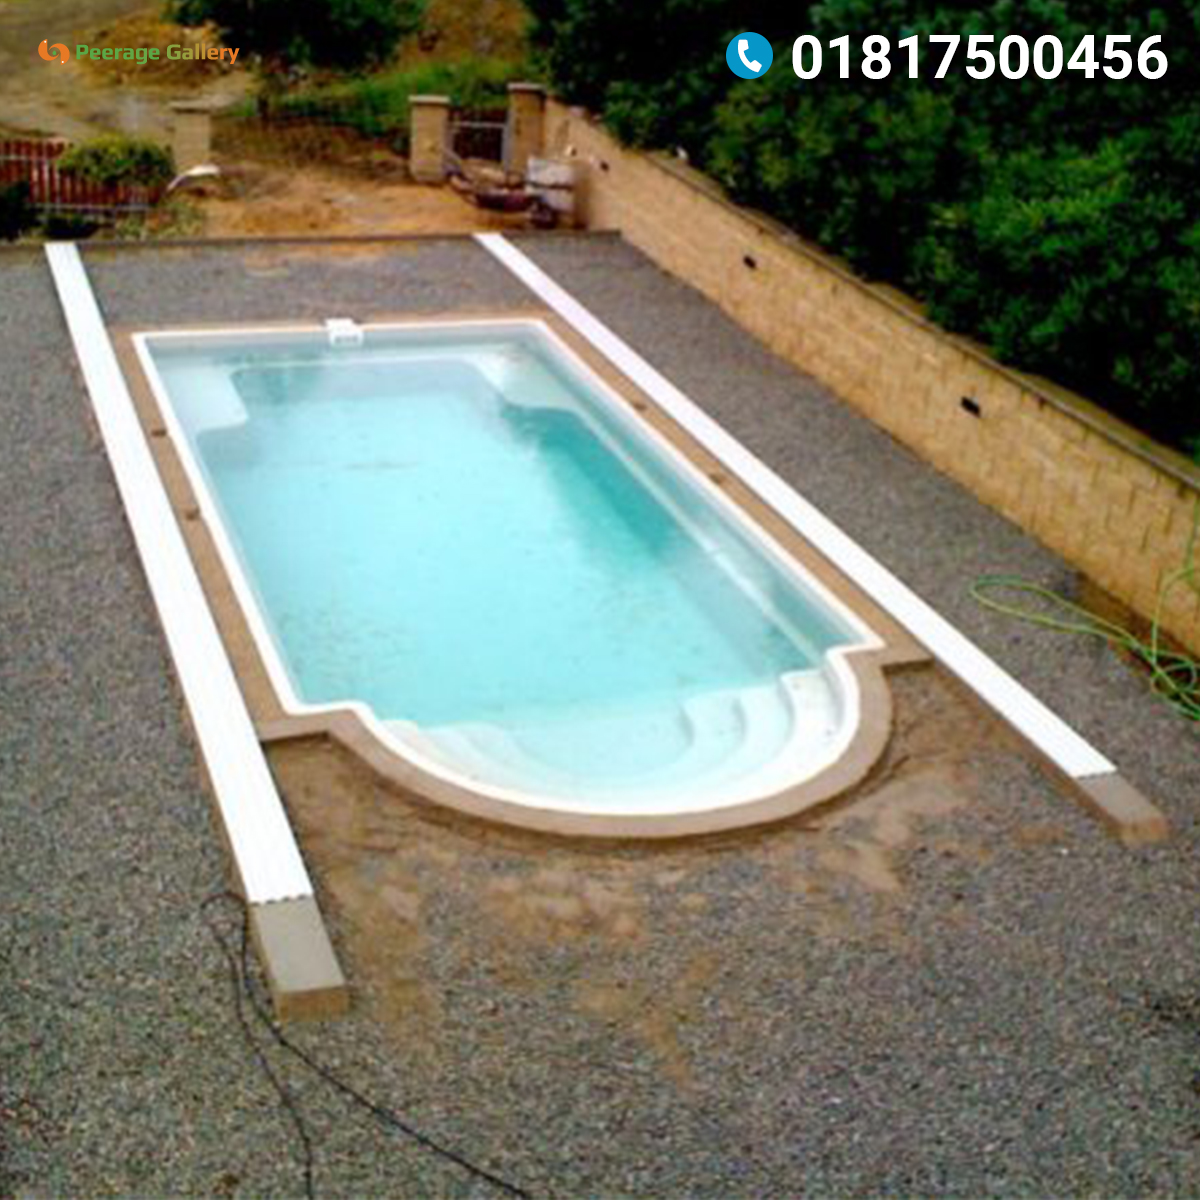 Swimming Pool Swimming Pool Construction Pool Construction Design